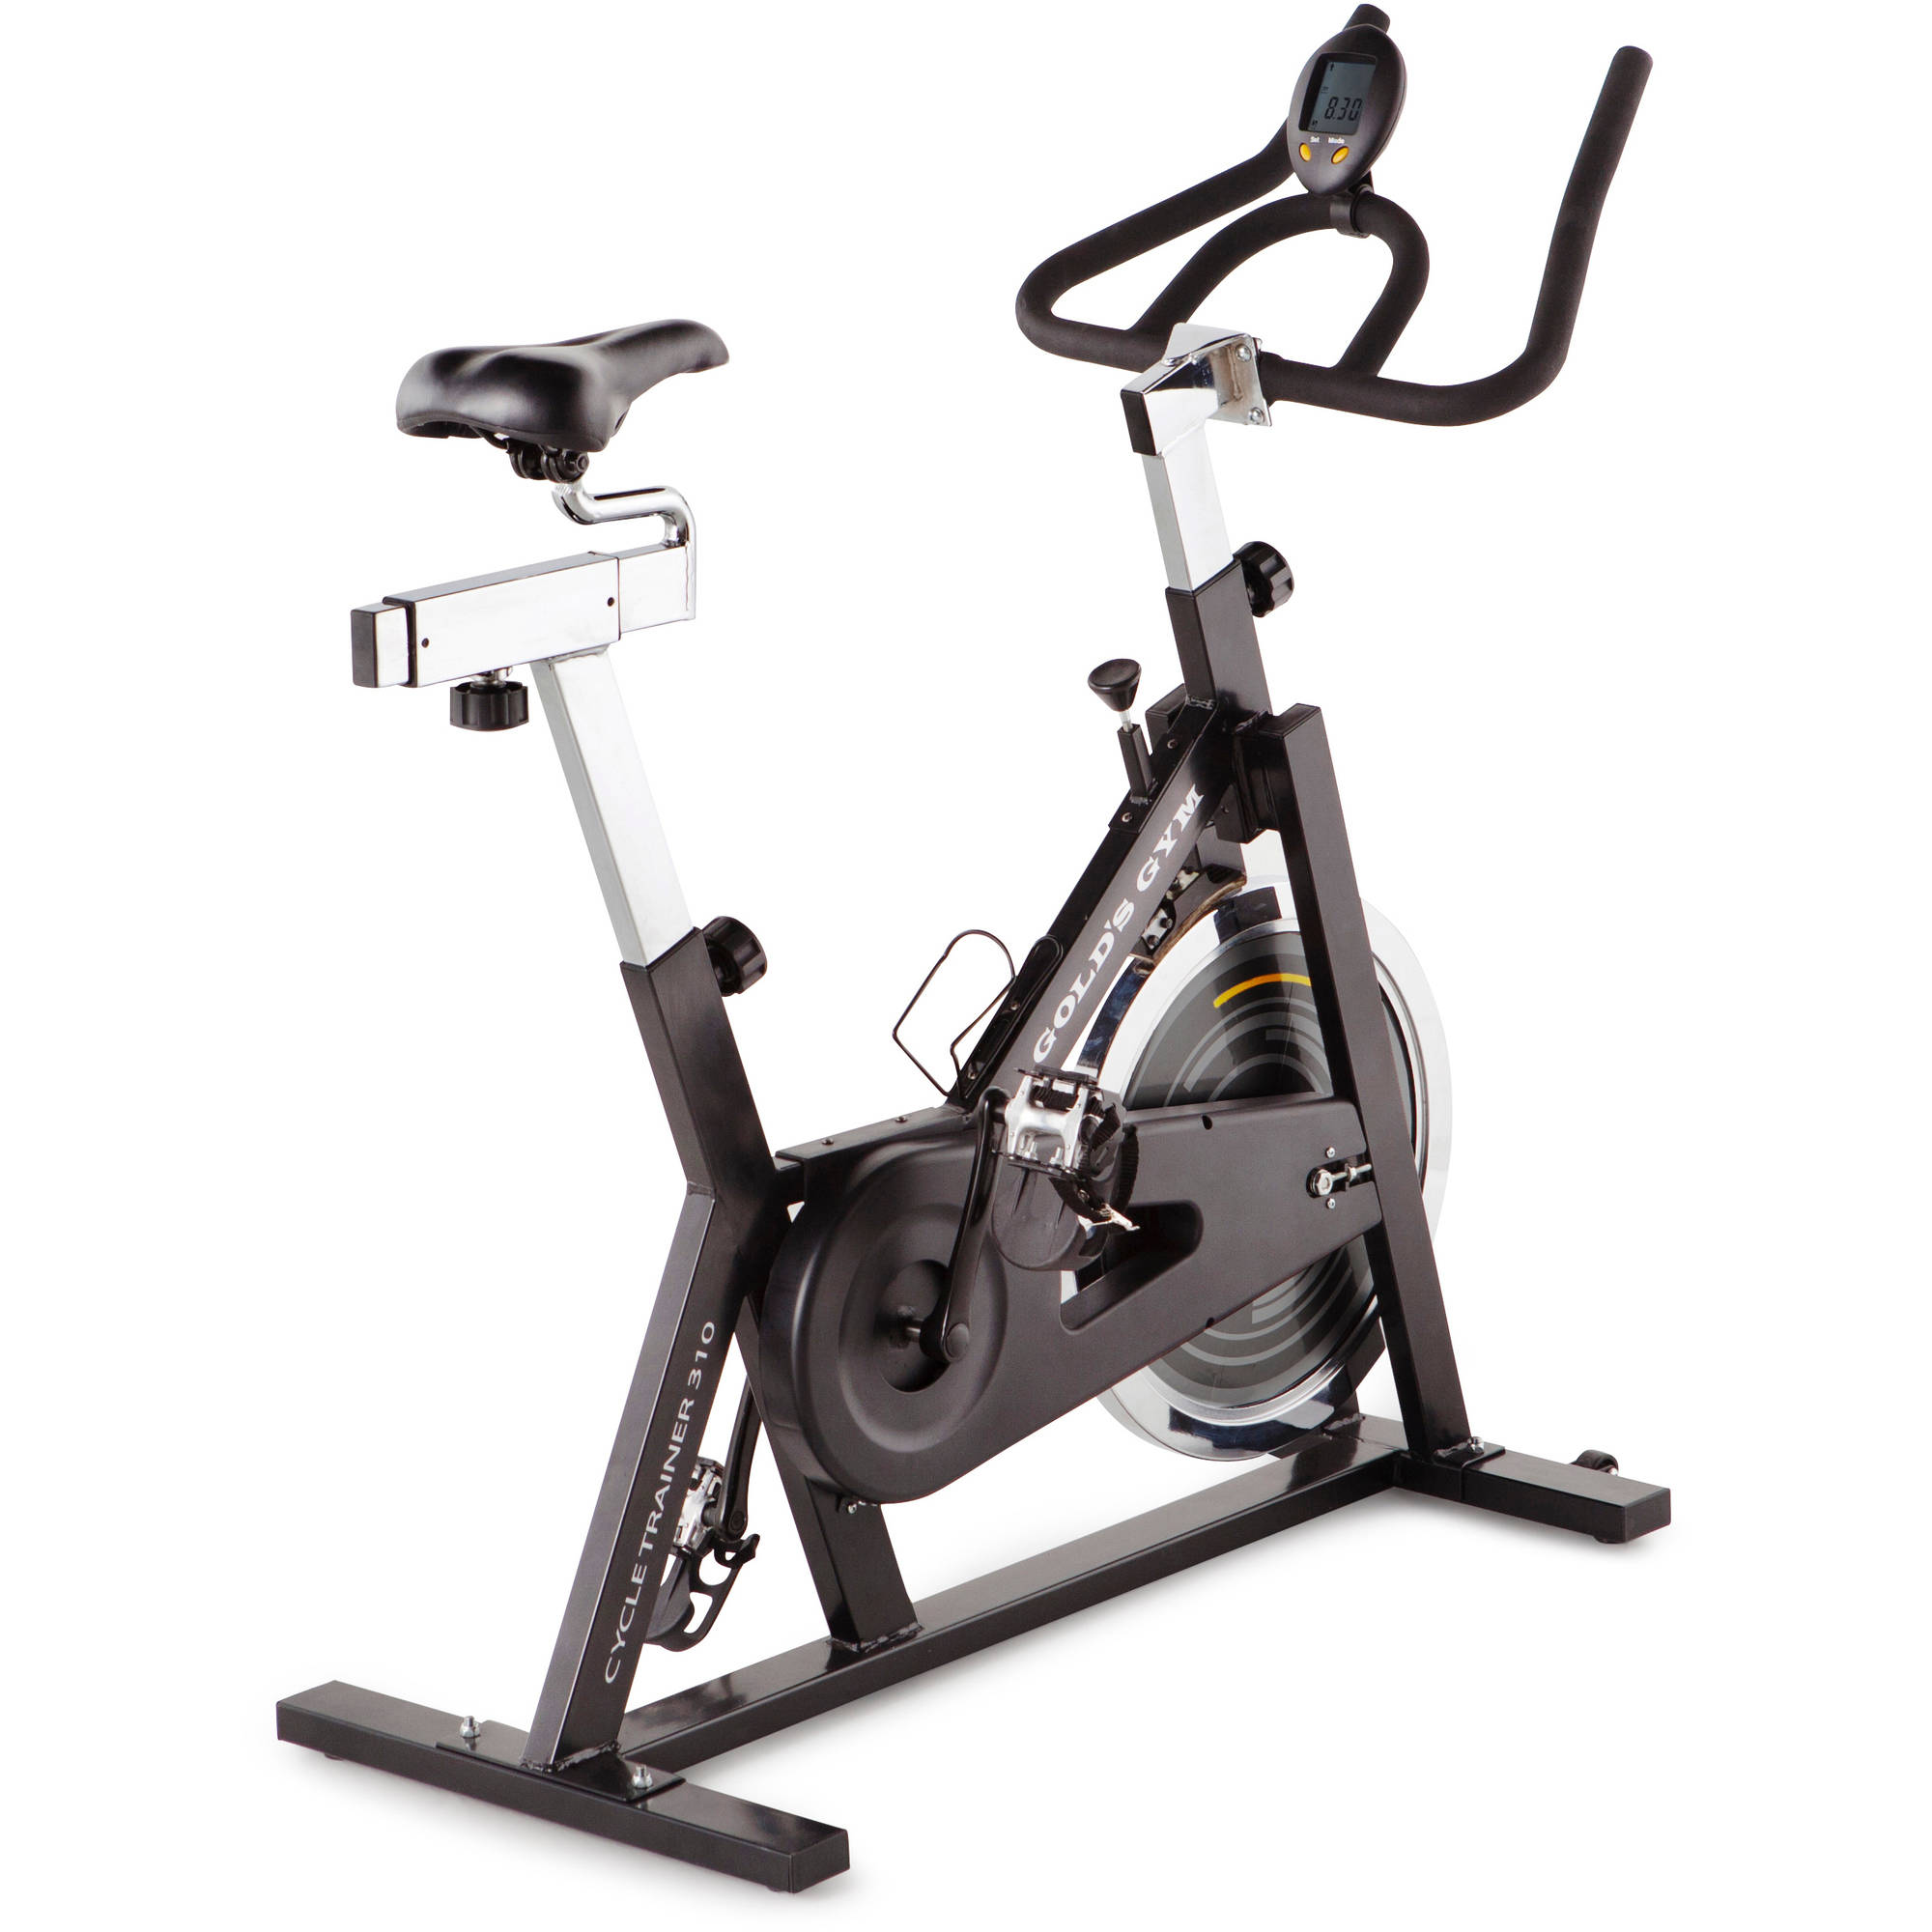 Gold's Gym Cycle Trainer 310 Exercise Bike